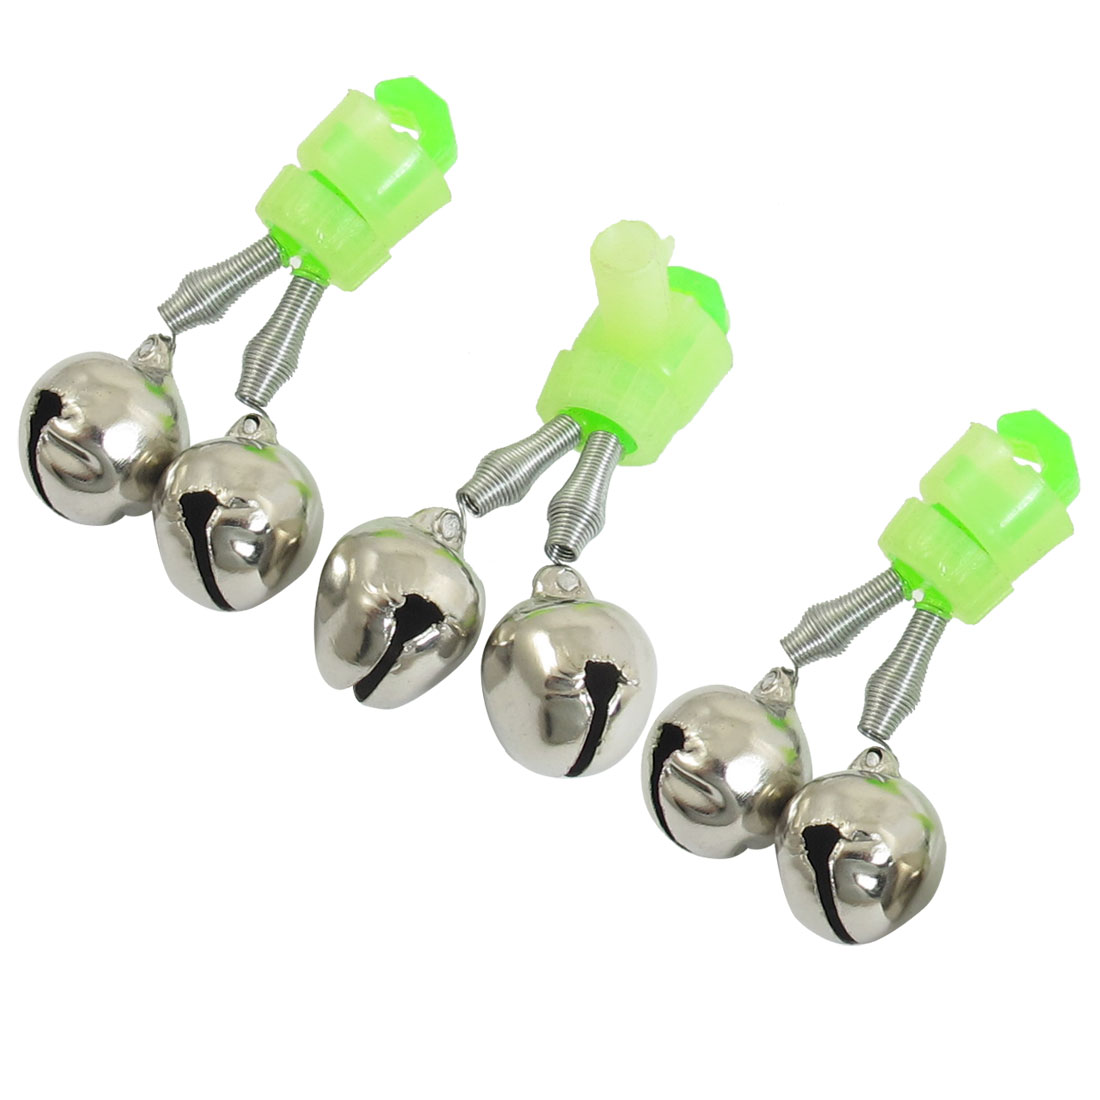 3 Pcs Fishing Rod Tip Green Silver Tone Double Bell Bait Alarm Ring